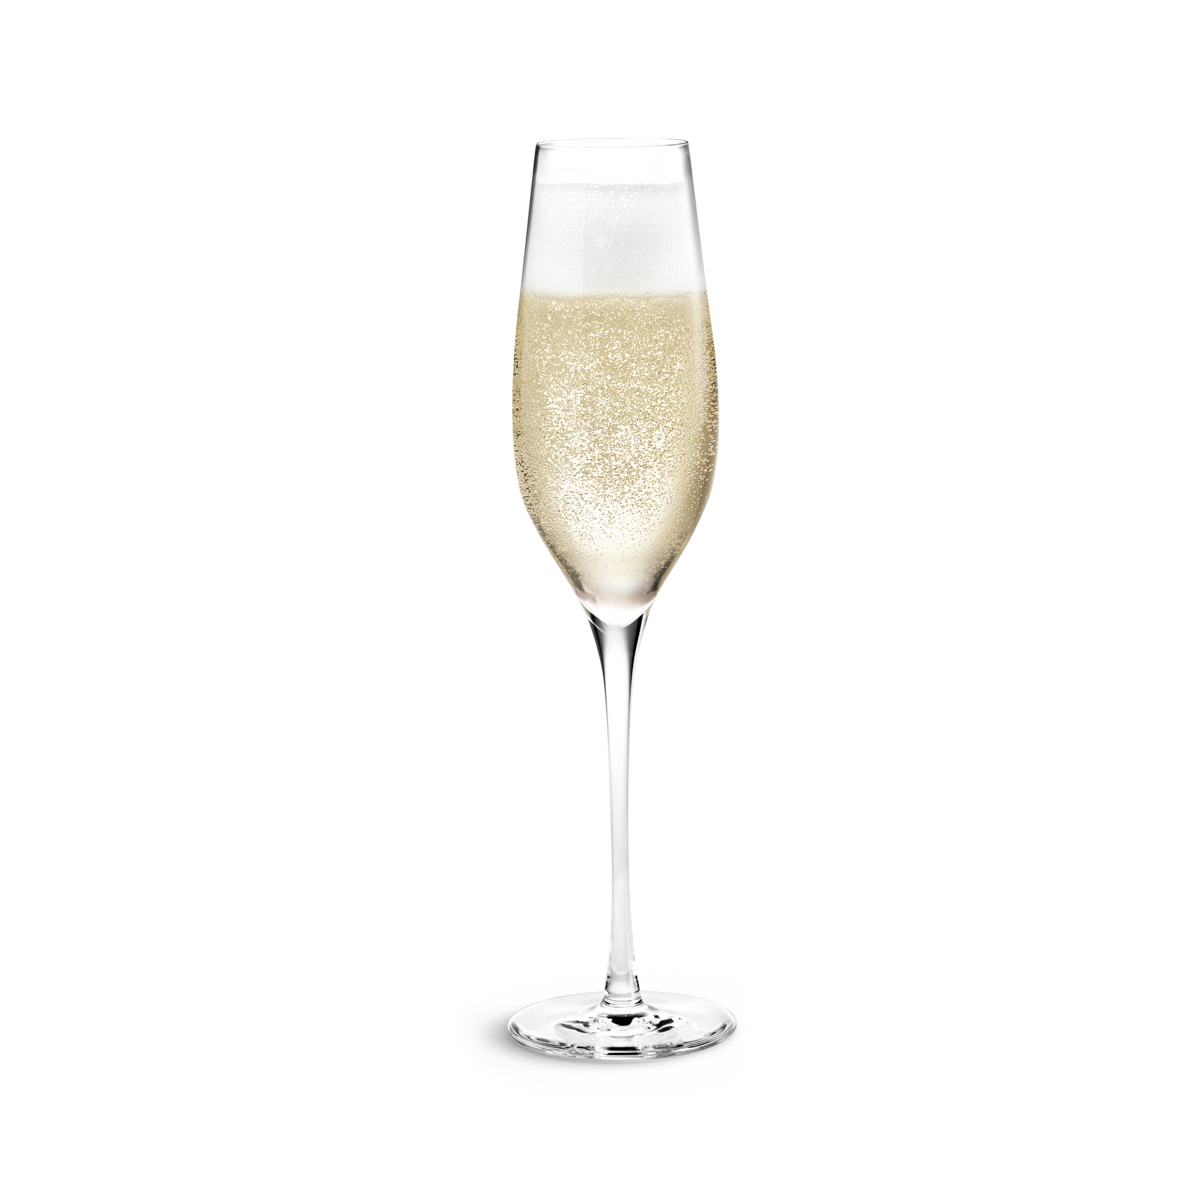 Champagne glass png. Glasses from holmegaard cabernet